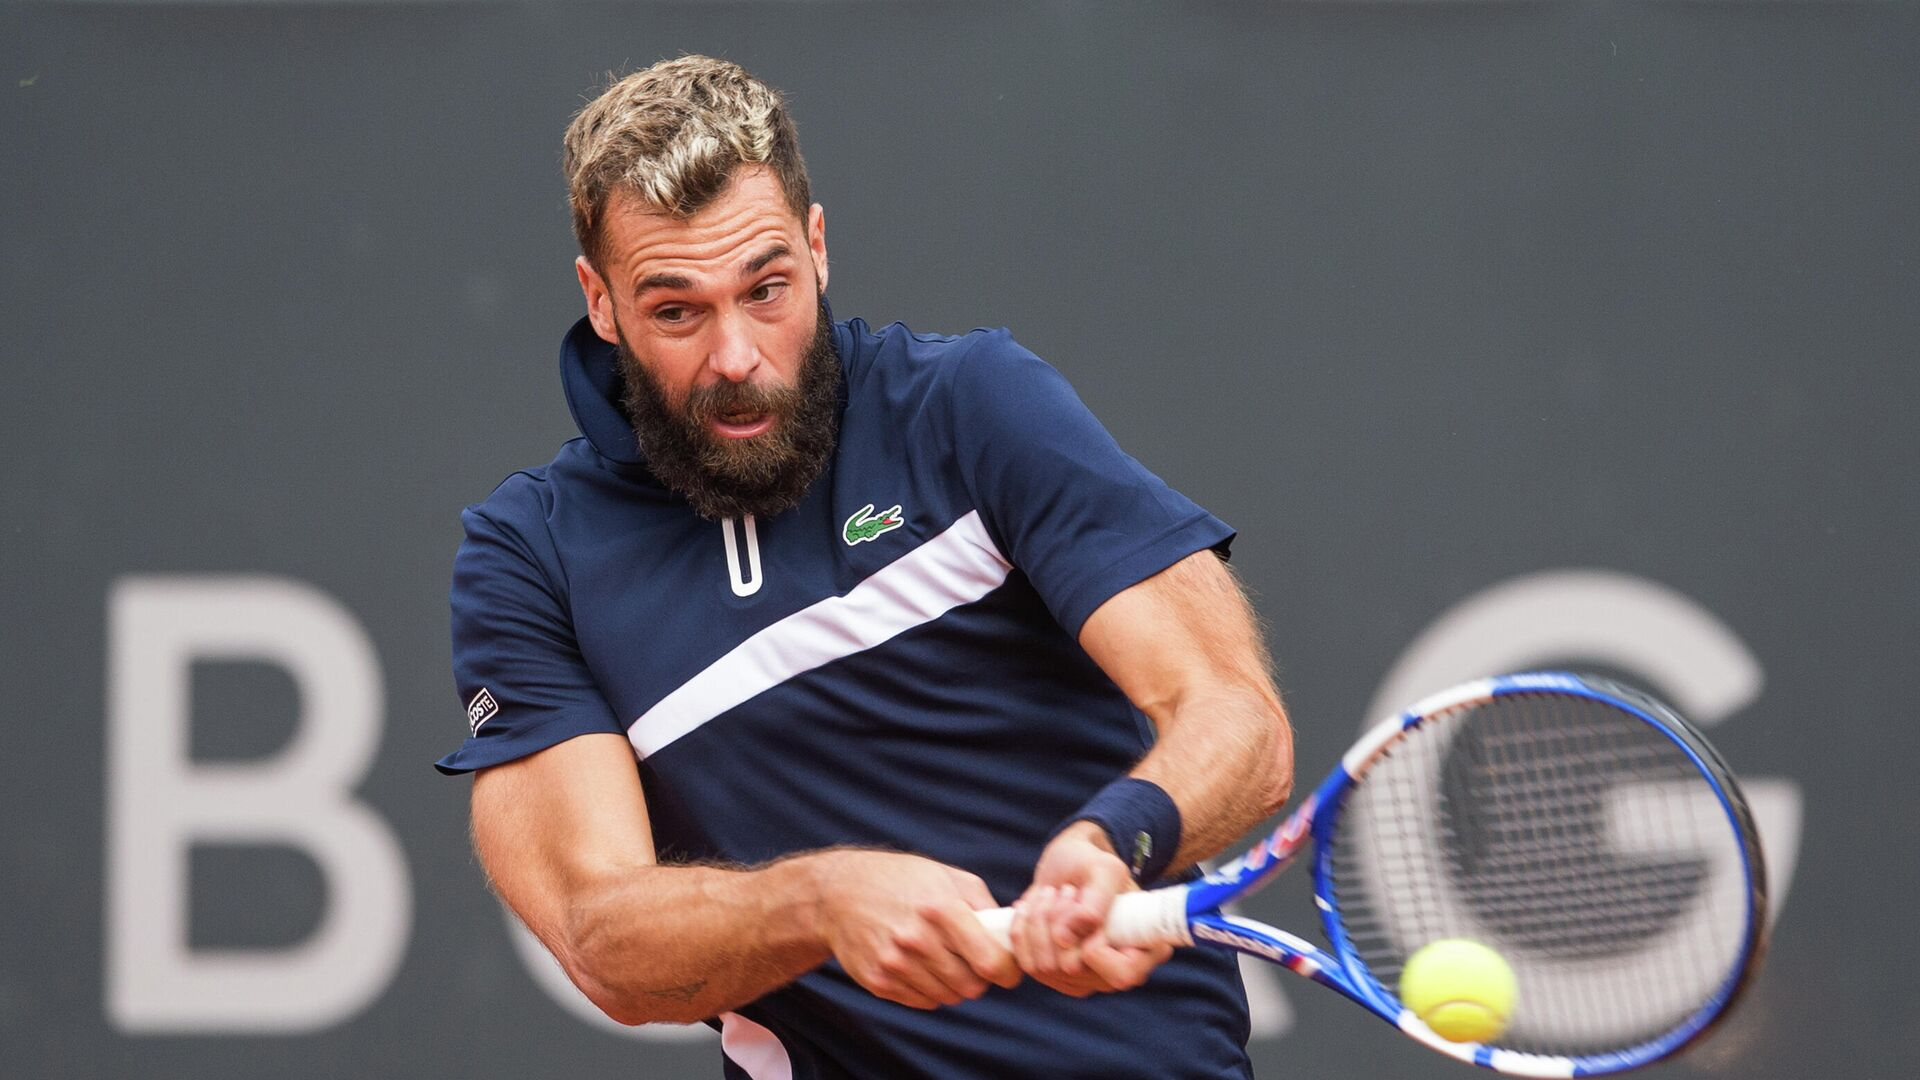 Benoit Paire of France returns the ball to Casper Ruud of Norway during their first round match of the ATP-Tour German Open tennis tournament at the stadium Am Rothenbaum in Hamburg, northern Germany, on September 23, 2020. - Paire gave up in the second set. (Photo by Daniel Bockwoldt / dpa / AFP) / Germany OUT - РИА Новости, 1920, 23.09.2020